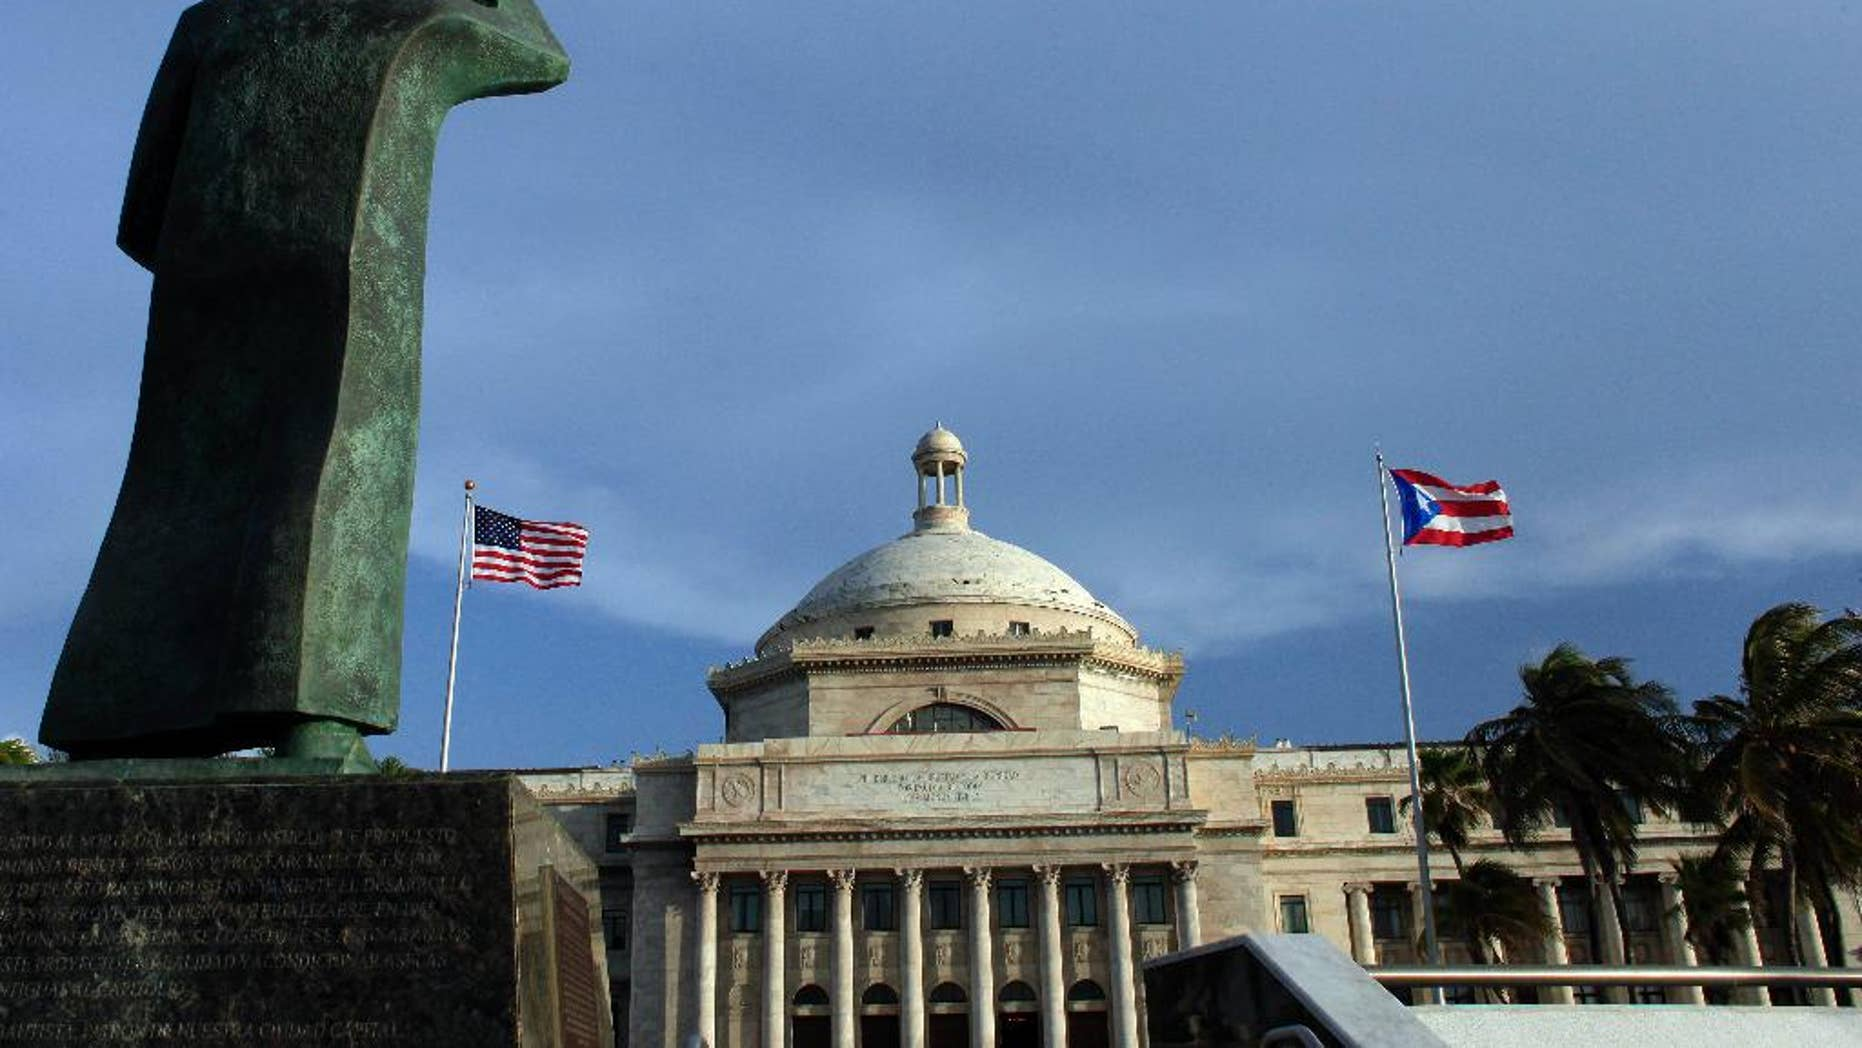 FILE - In this July 29, 2015 file photo, a bronze statue of San Juan Bautista stands in front of Puerto Rico's capitol flanked by U.S. and Puerto Rican flags, in San Juan. A federal control board on Friday, Sept. 30, 2016, took over Puerto Rico's finances and several government agencies for the first time in the U.S. territory's history in a bid to haul the island out of an acute economic crisis.  (AP Photo/Ricardo Arduengo, File)